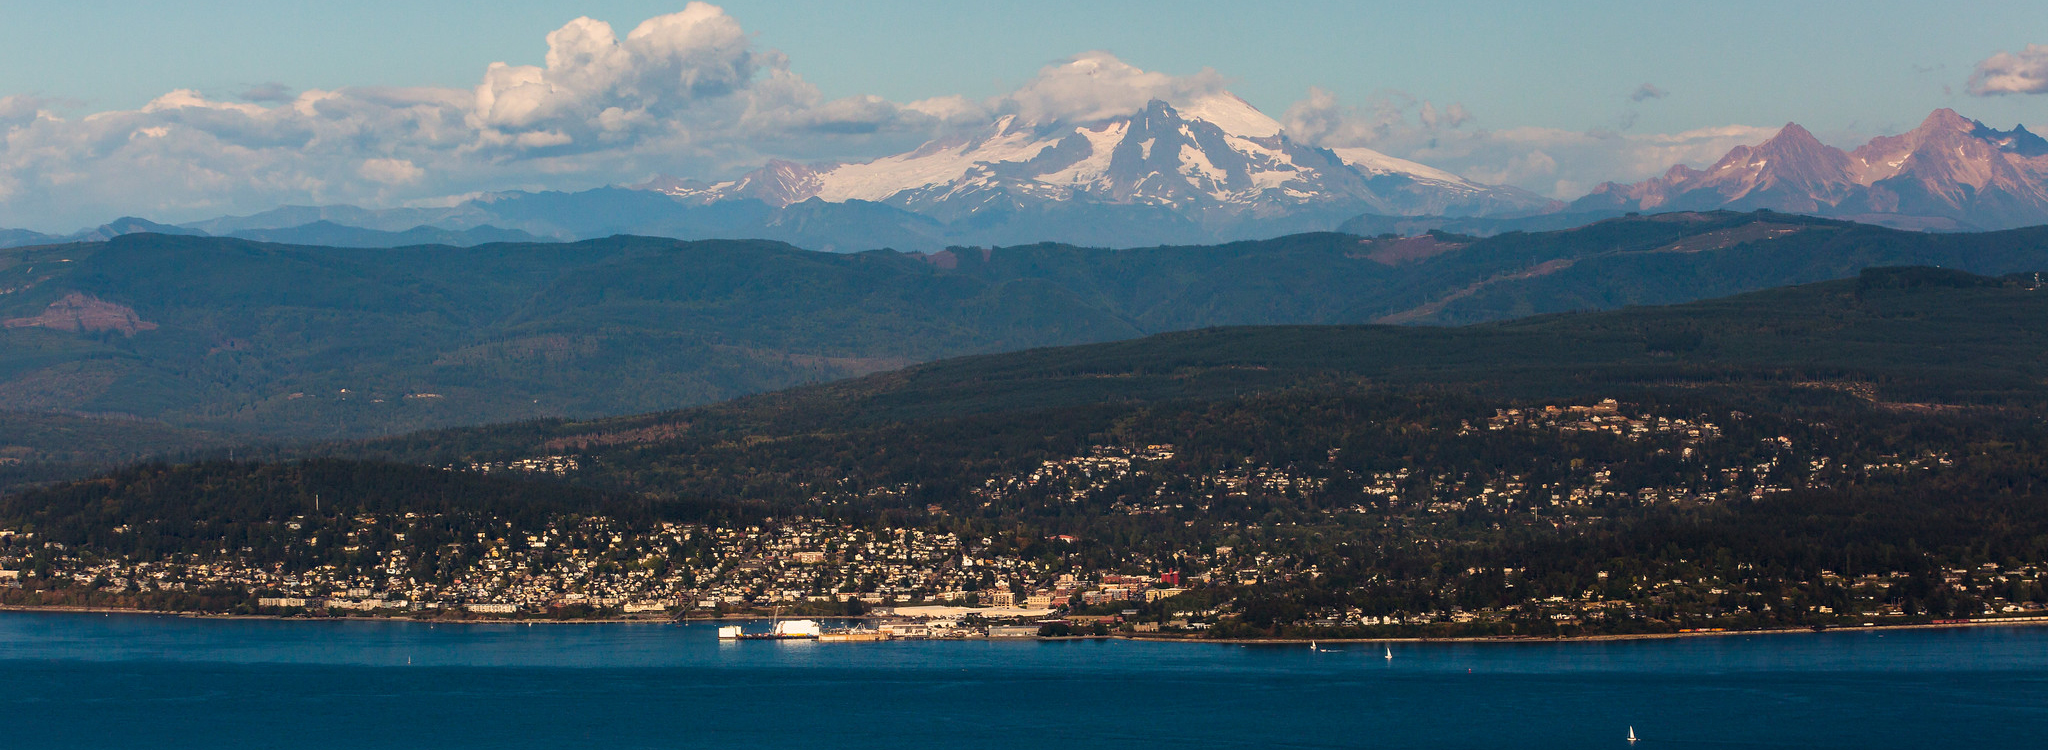 Aerial photo of Bellingham, Bellingham Bay, and Mount Baker. Bellingham is nestled in the hills and valleys between the bay and the mountains.